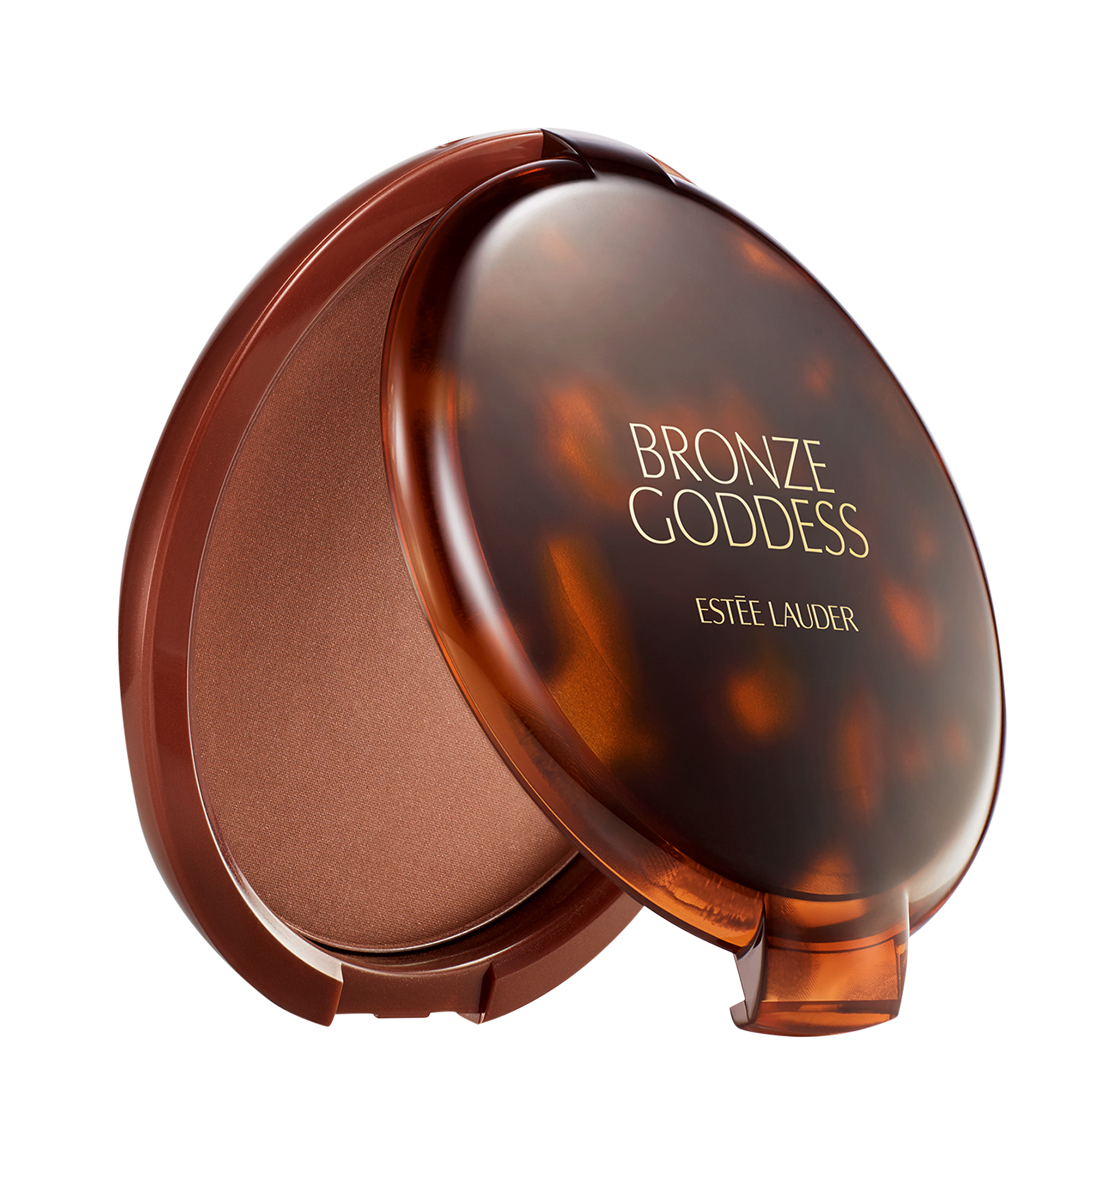 bronzegoddessadproductfragrancebronzer_global_expiry-march-2018